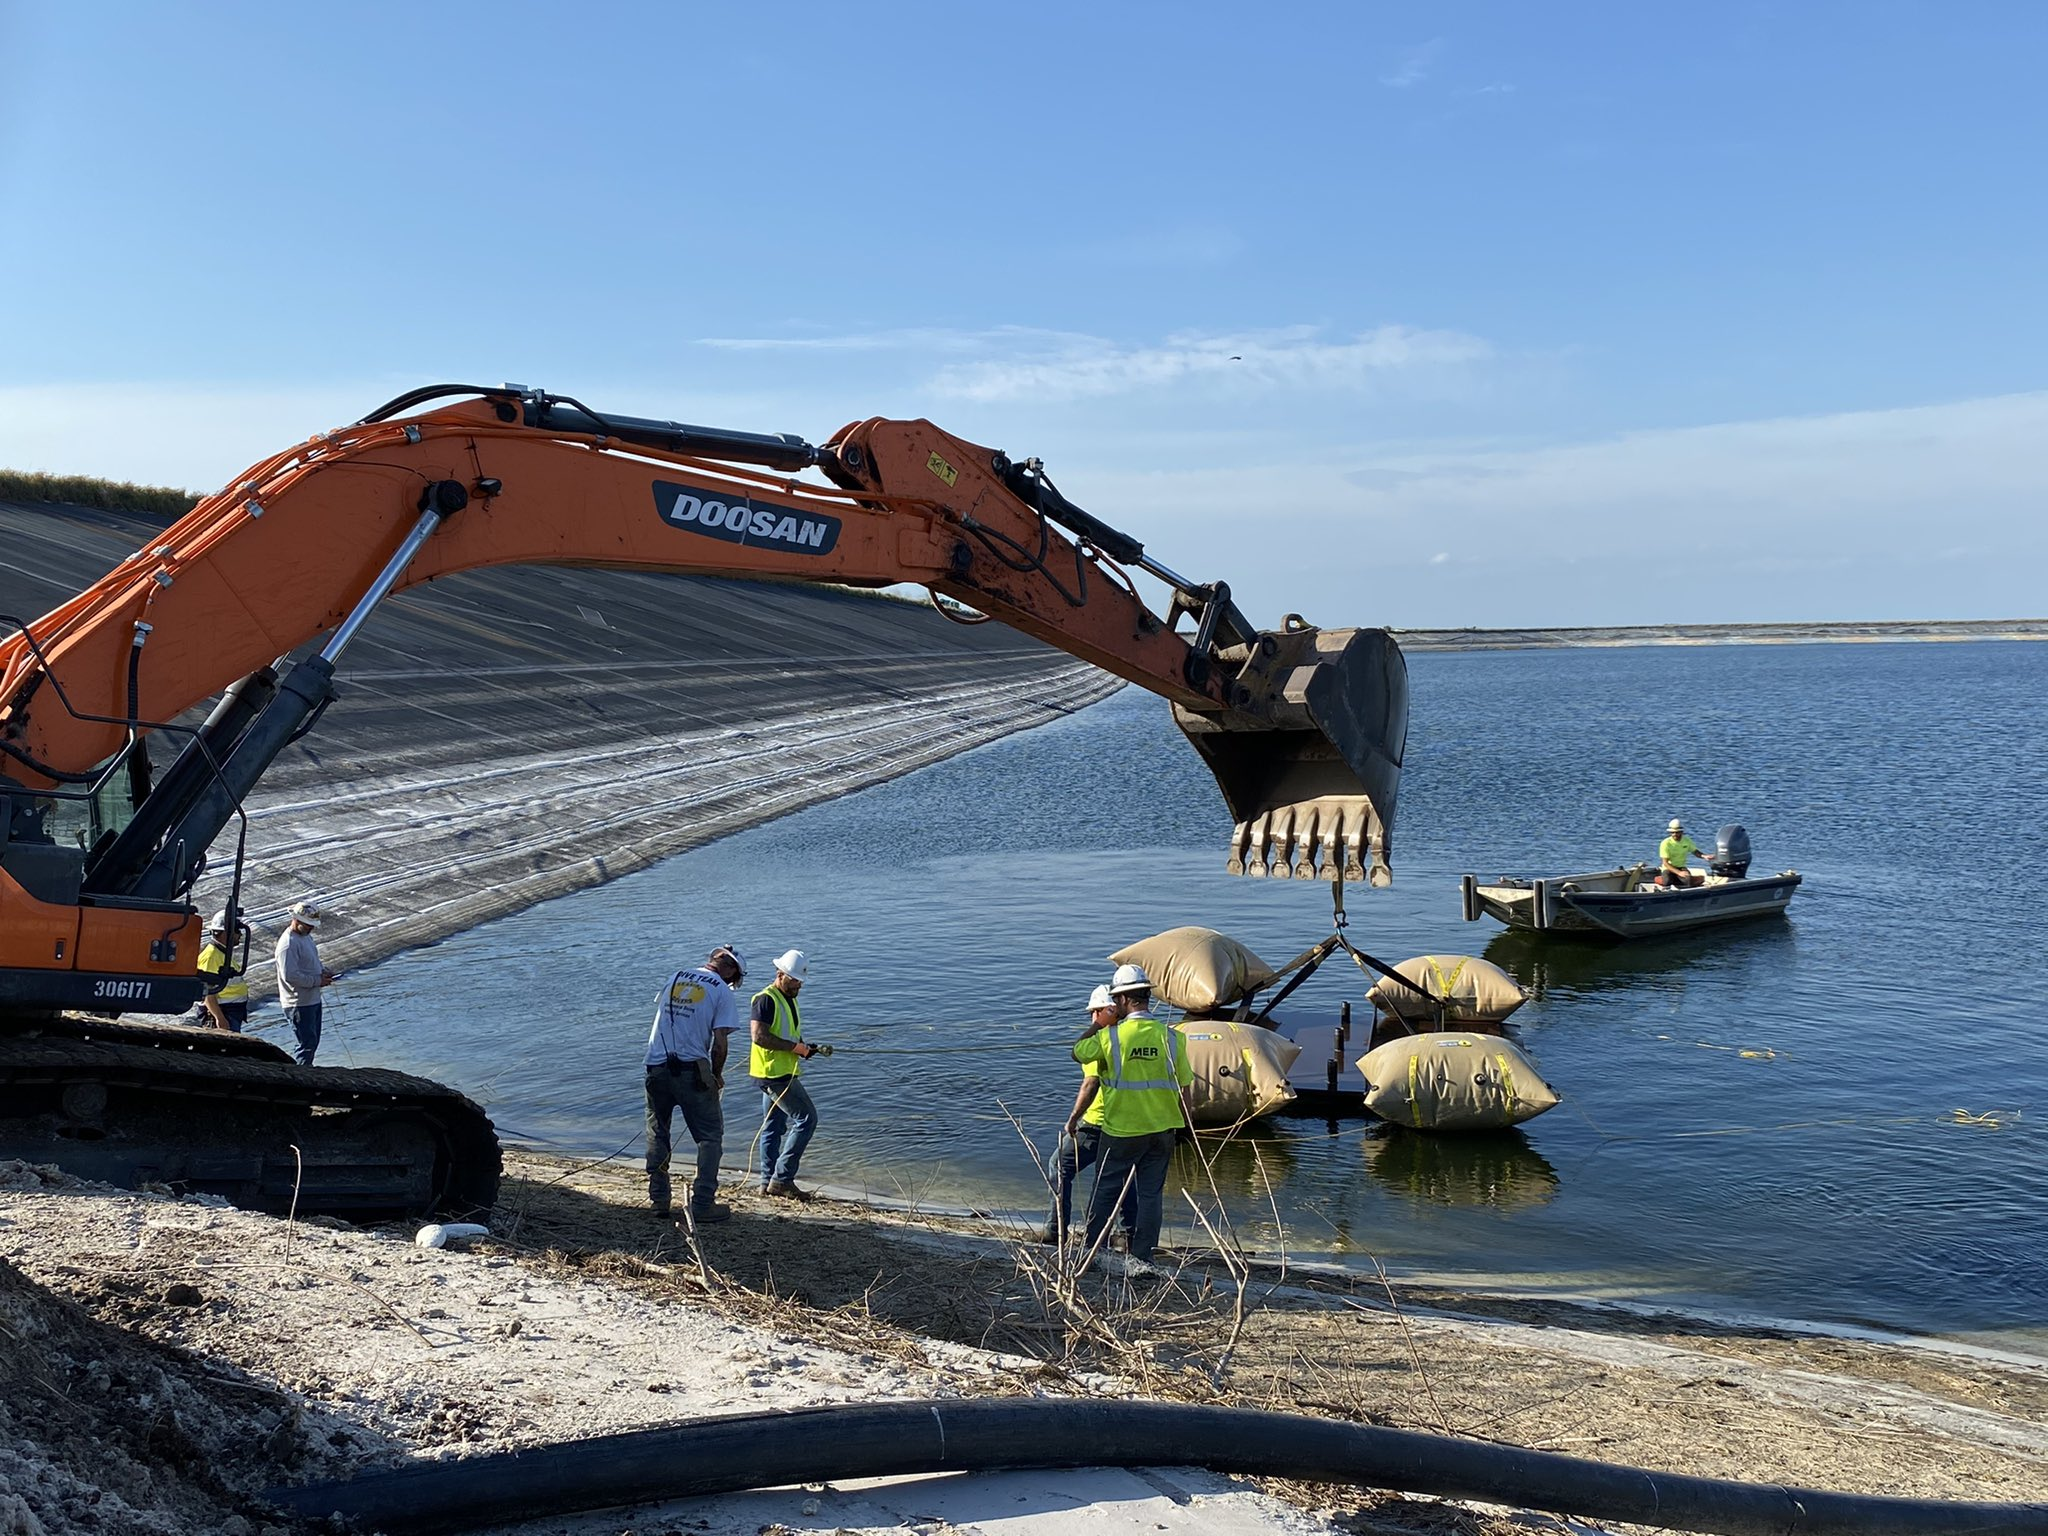 People and a large digger claw putting submersibles into a large reservoir